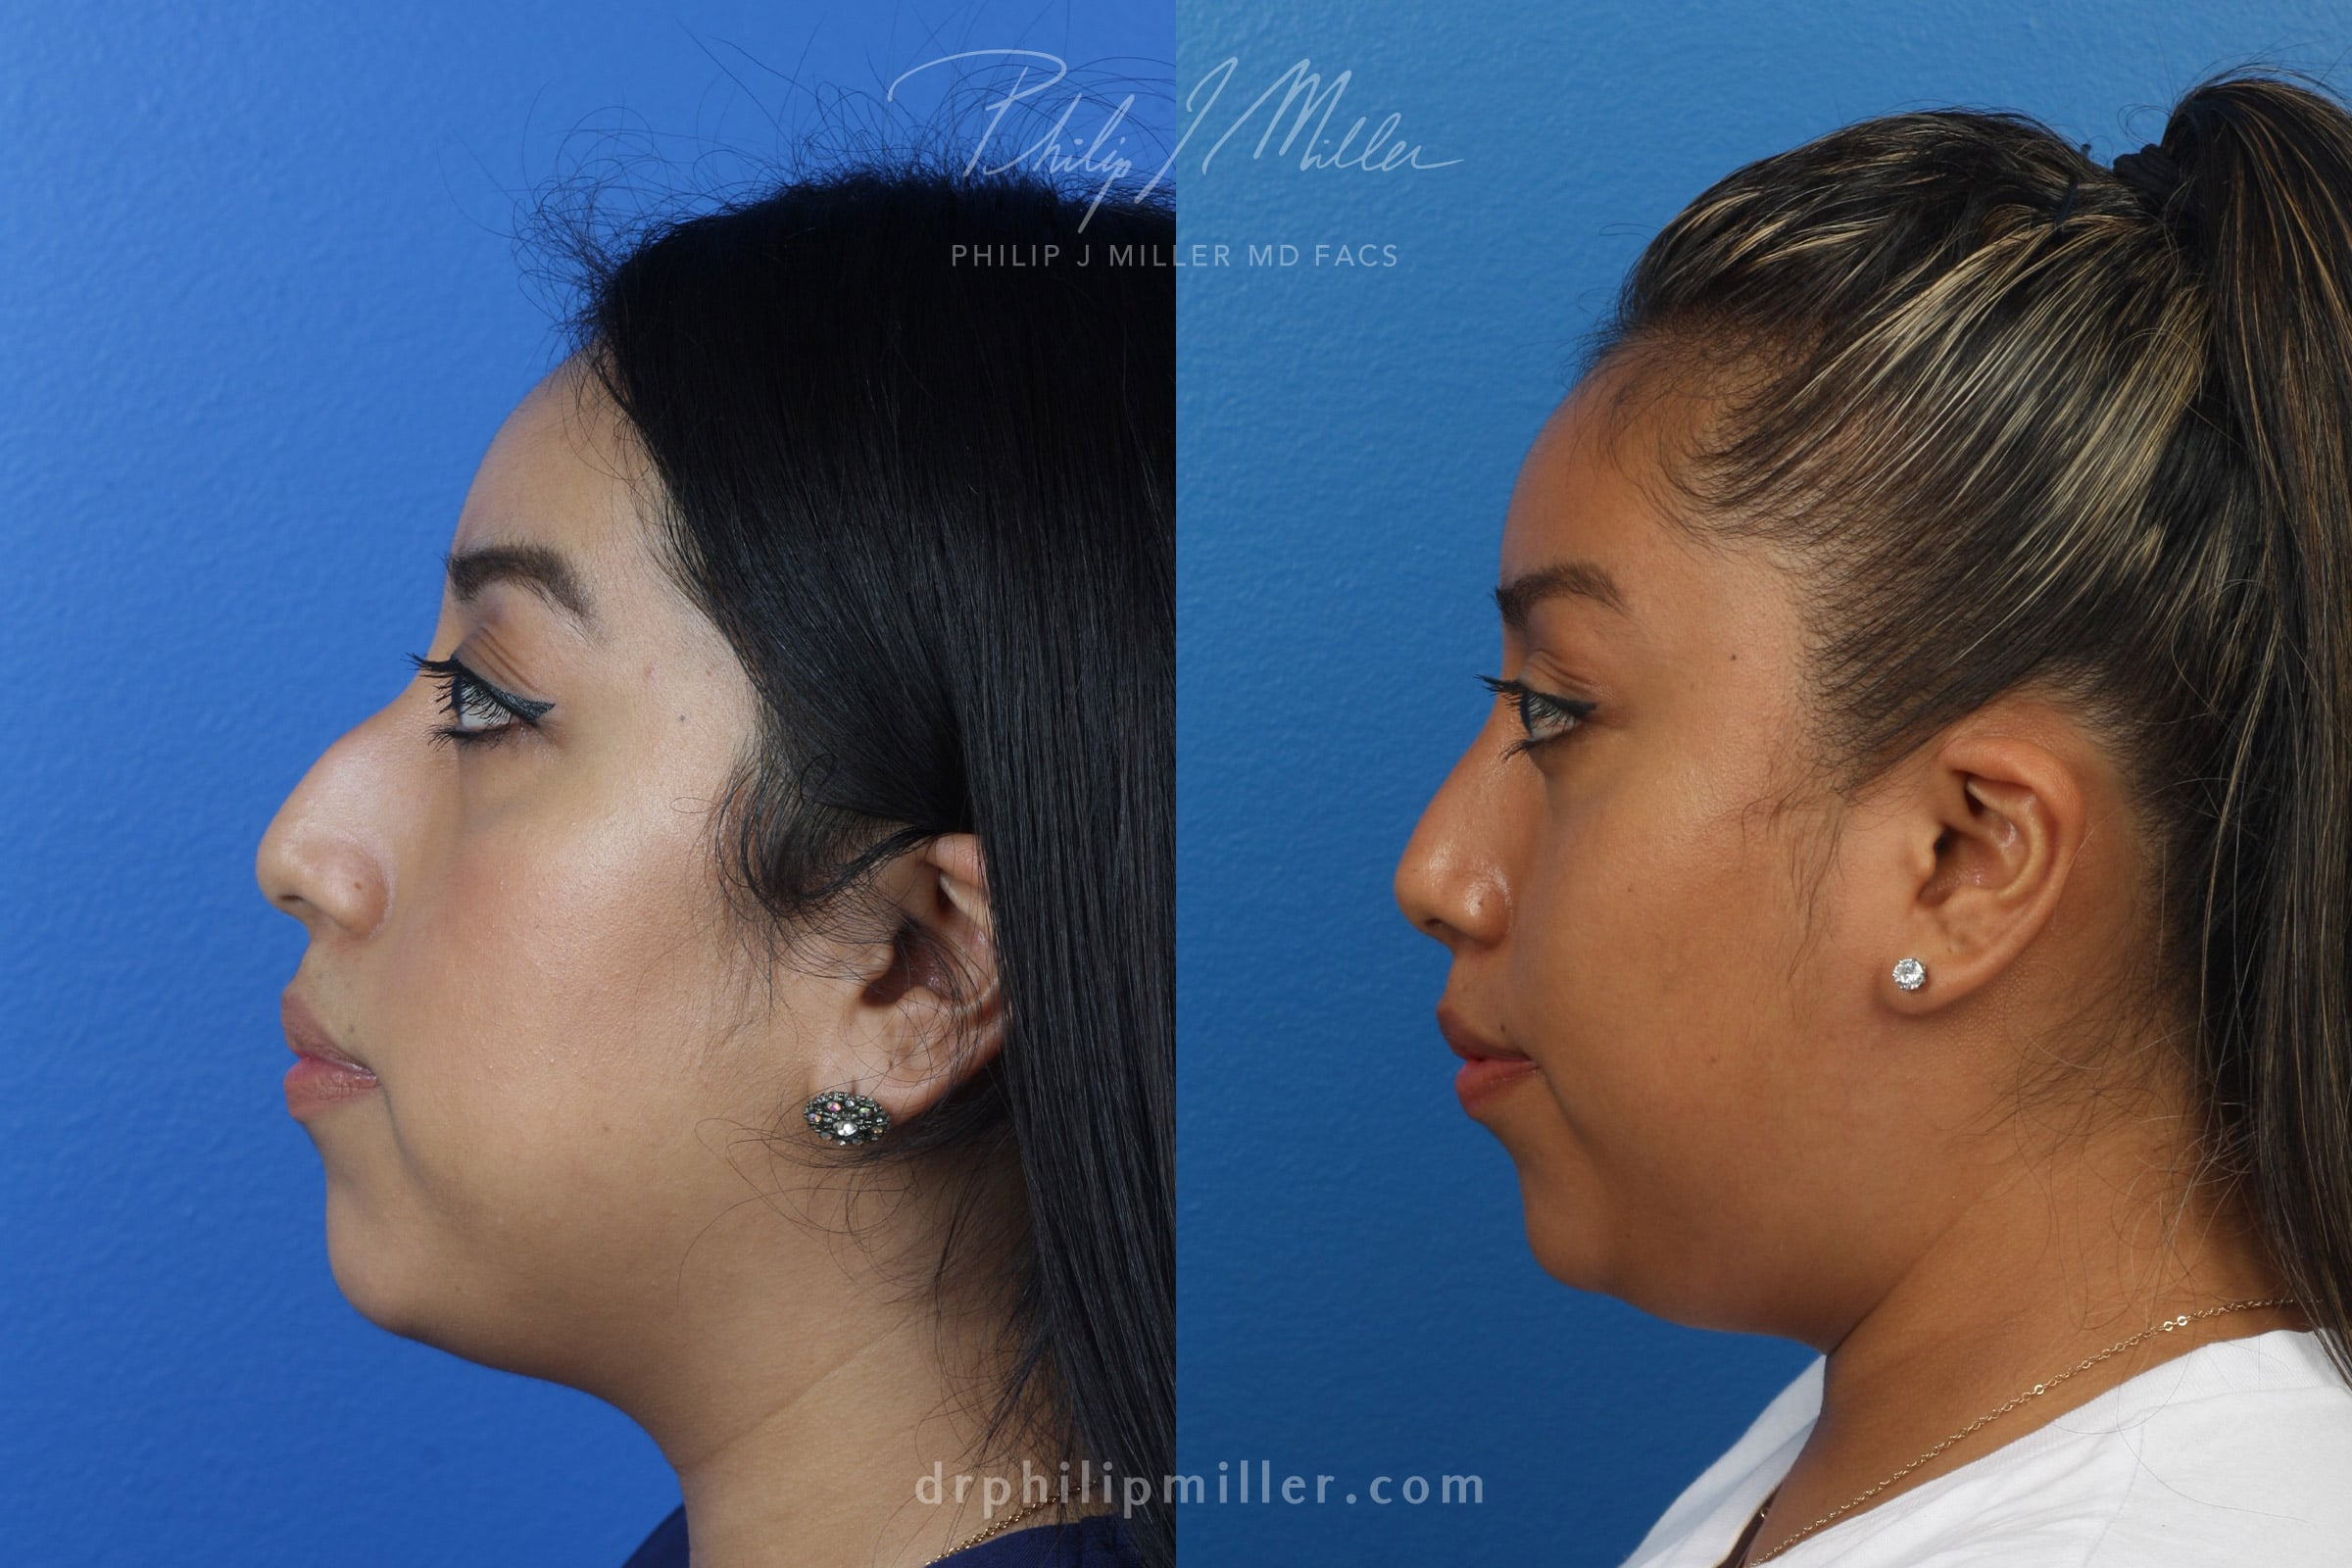 female rhinoplasty patient in new york